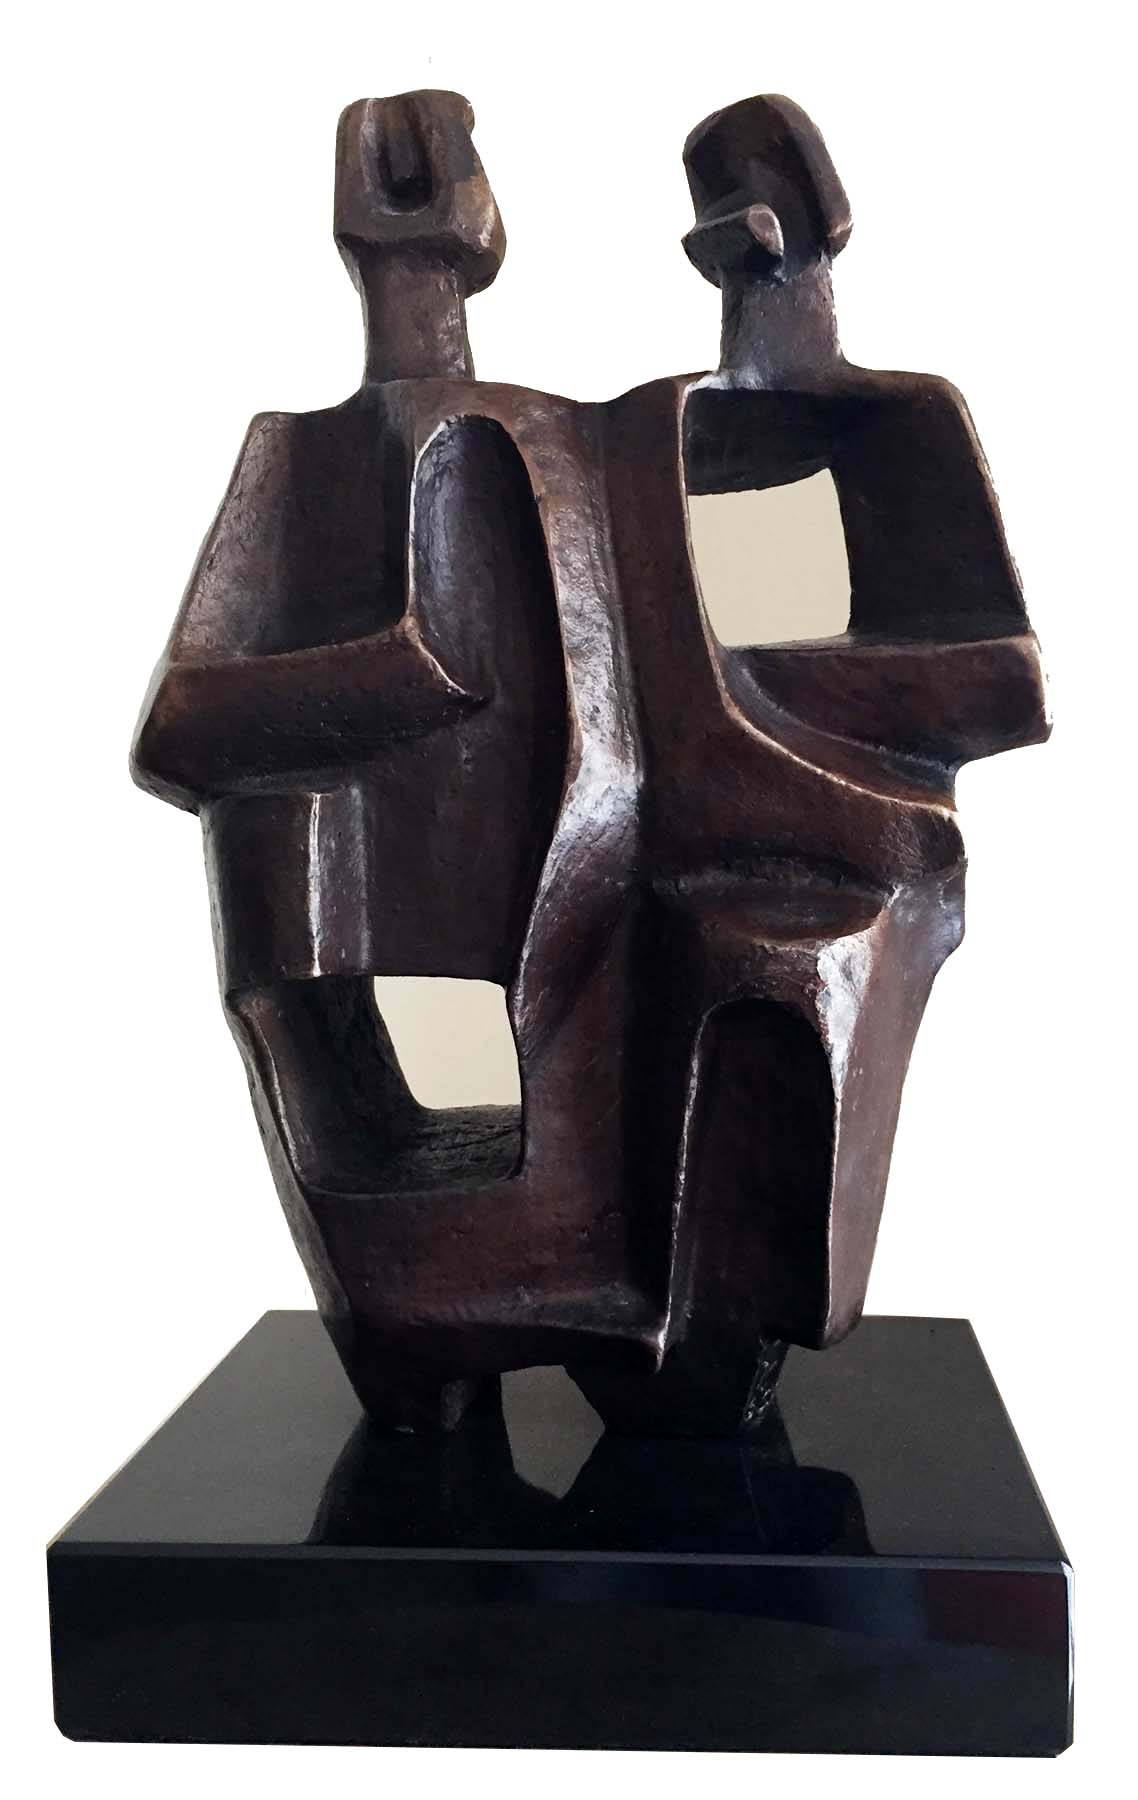 Charna Rickey Cubist Bronze American 1976 Modernism